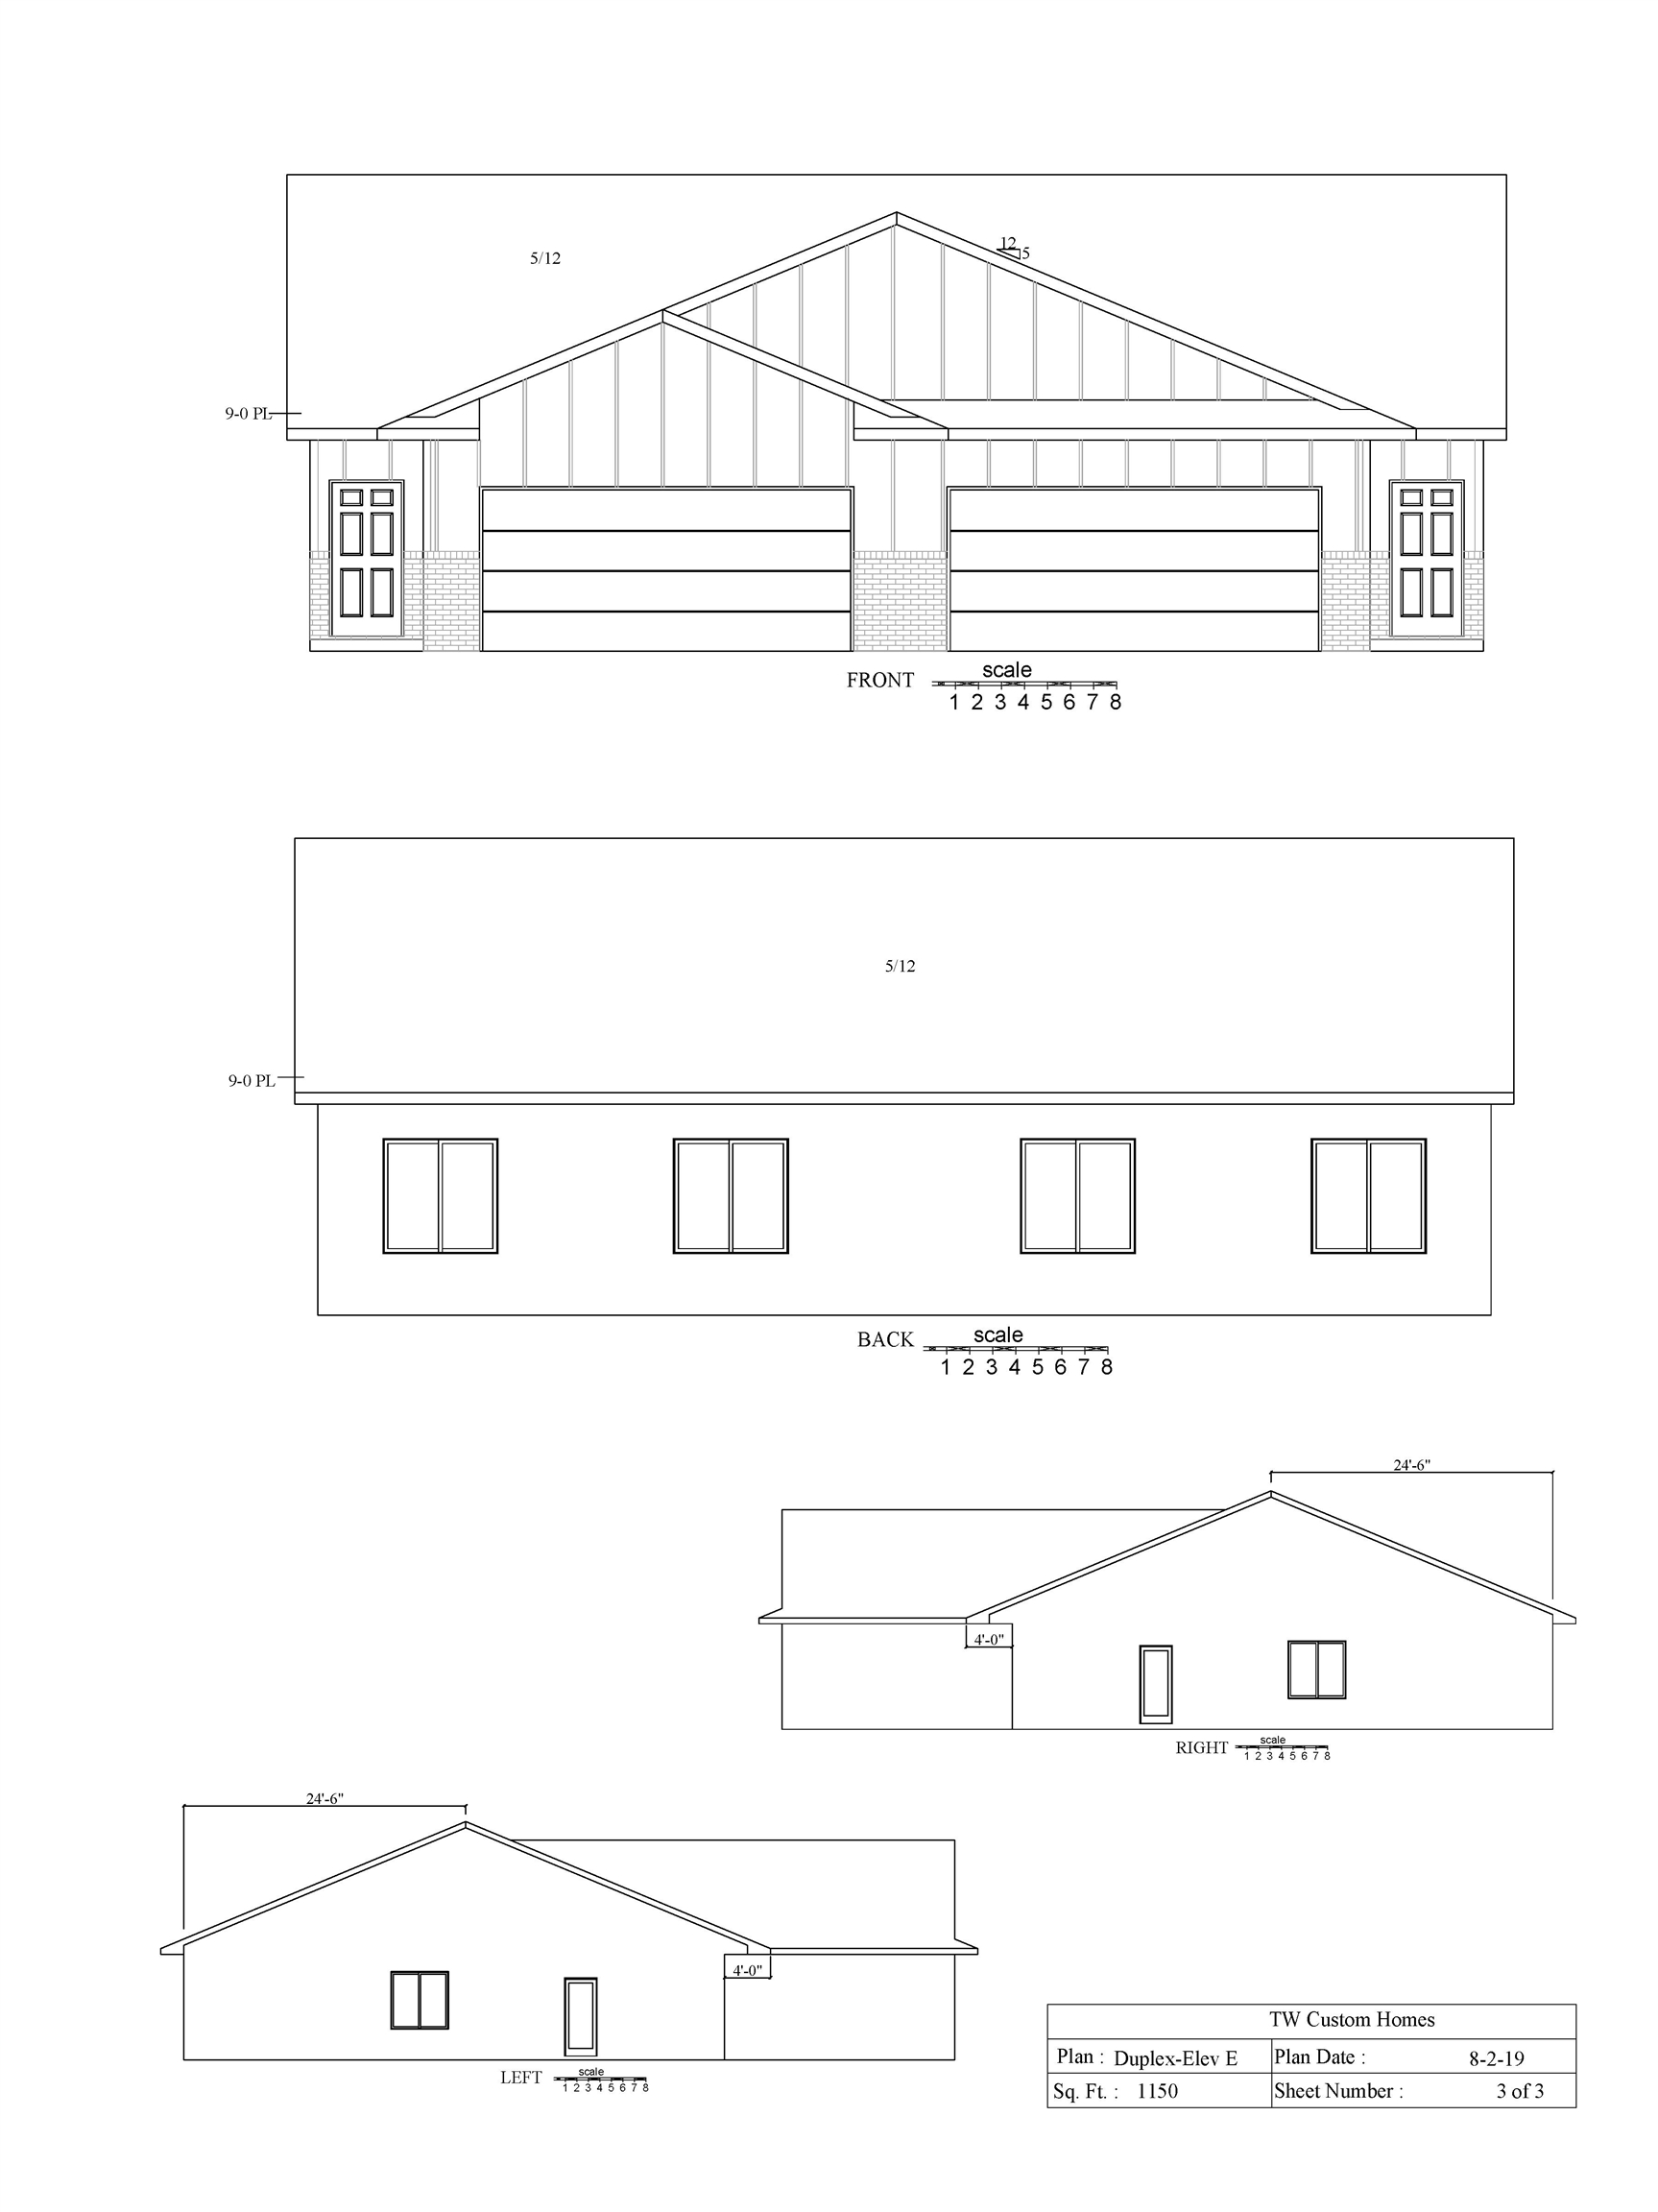 New 3 bed, 2 bath 2 car garage with White cabinetry and granite in kitchen and bath. Luxury vinyl fl